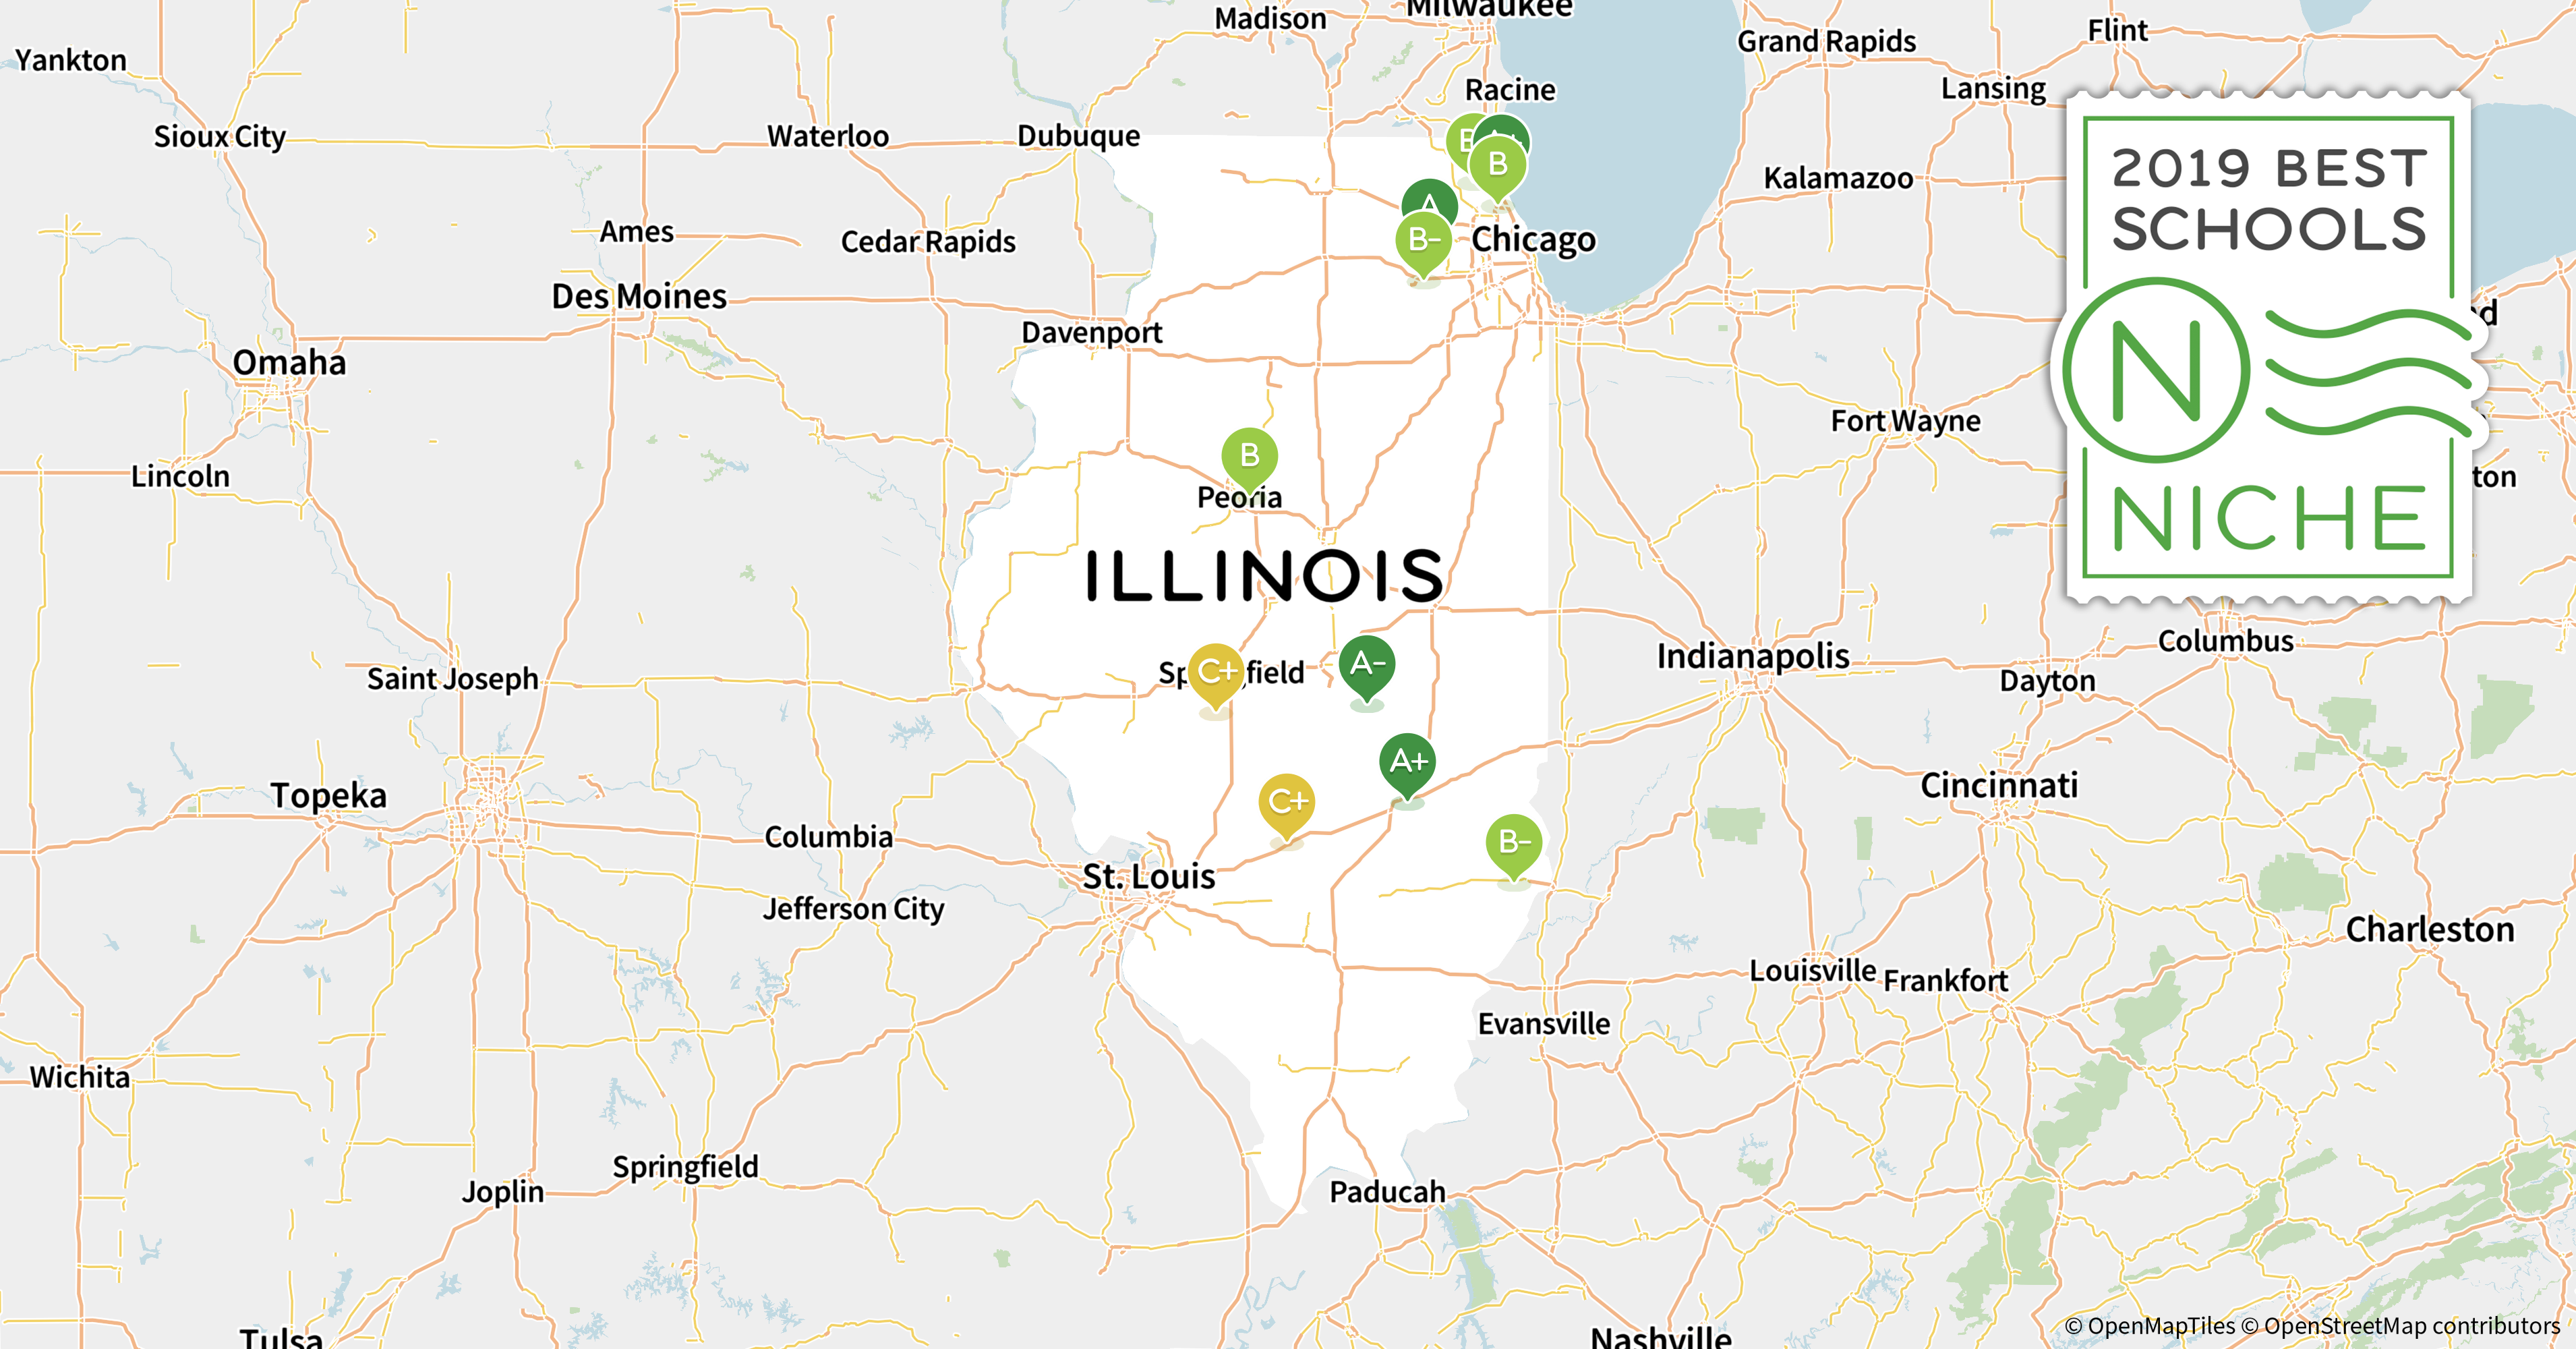 2019 Best School Districts in Illinois - Niche